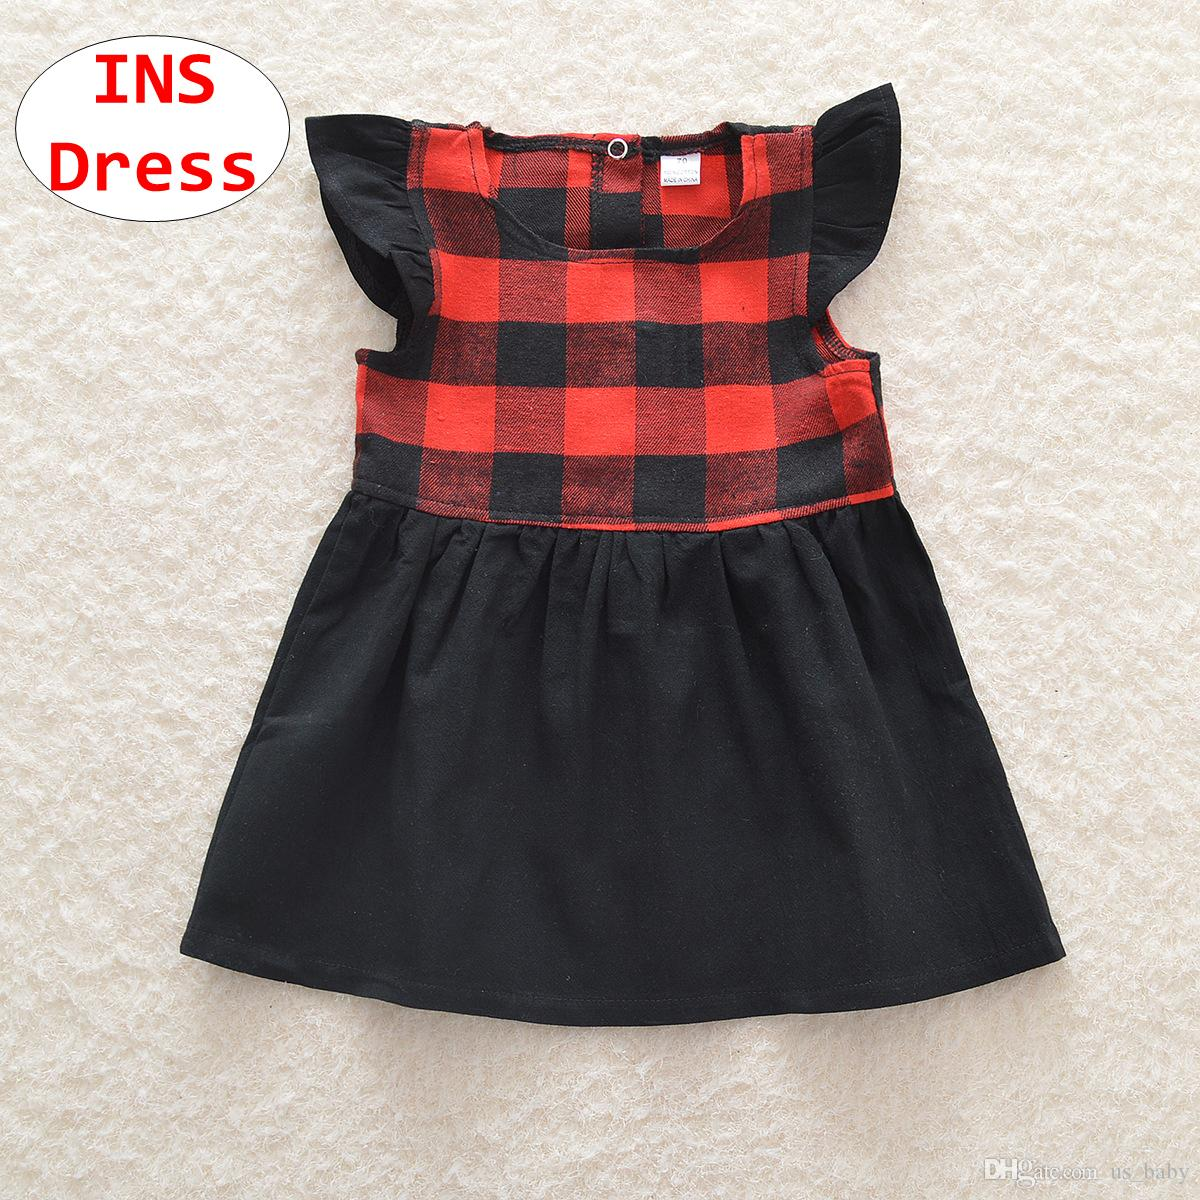 2018 ins girl red plaid dress baby christmas short sleeve dress kids autumn holiday ball gown costume from us_baby 503 dhgatecom - Christmas Plaid Dress